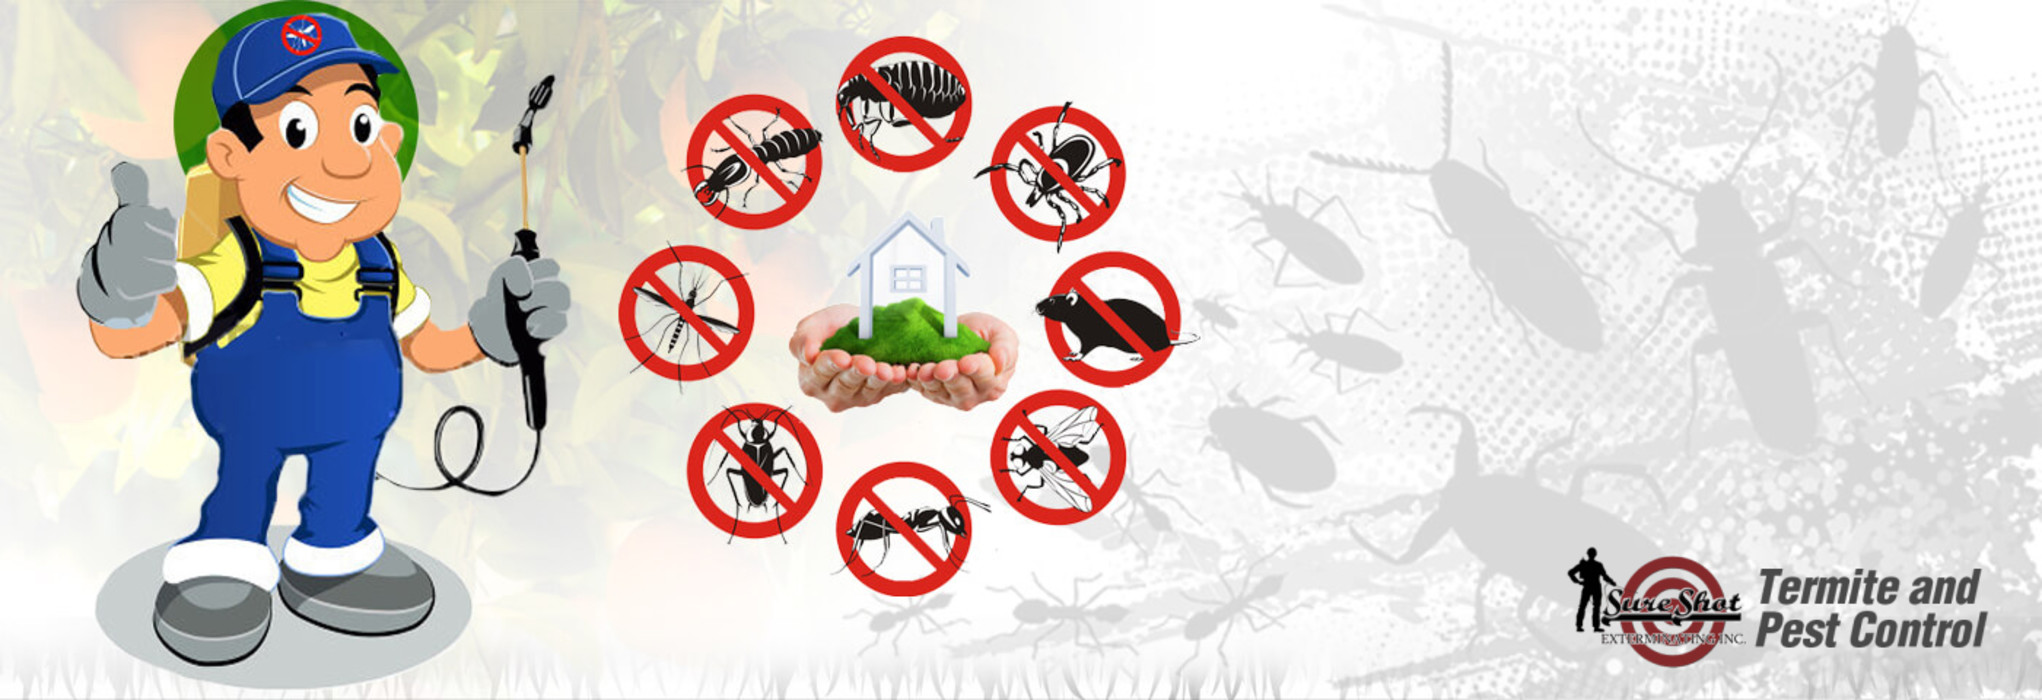 Things You Need To Know About Pest Control Services and Technology Home Renovation Lantai